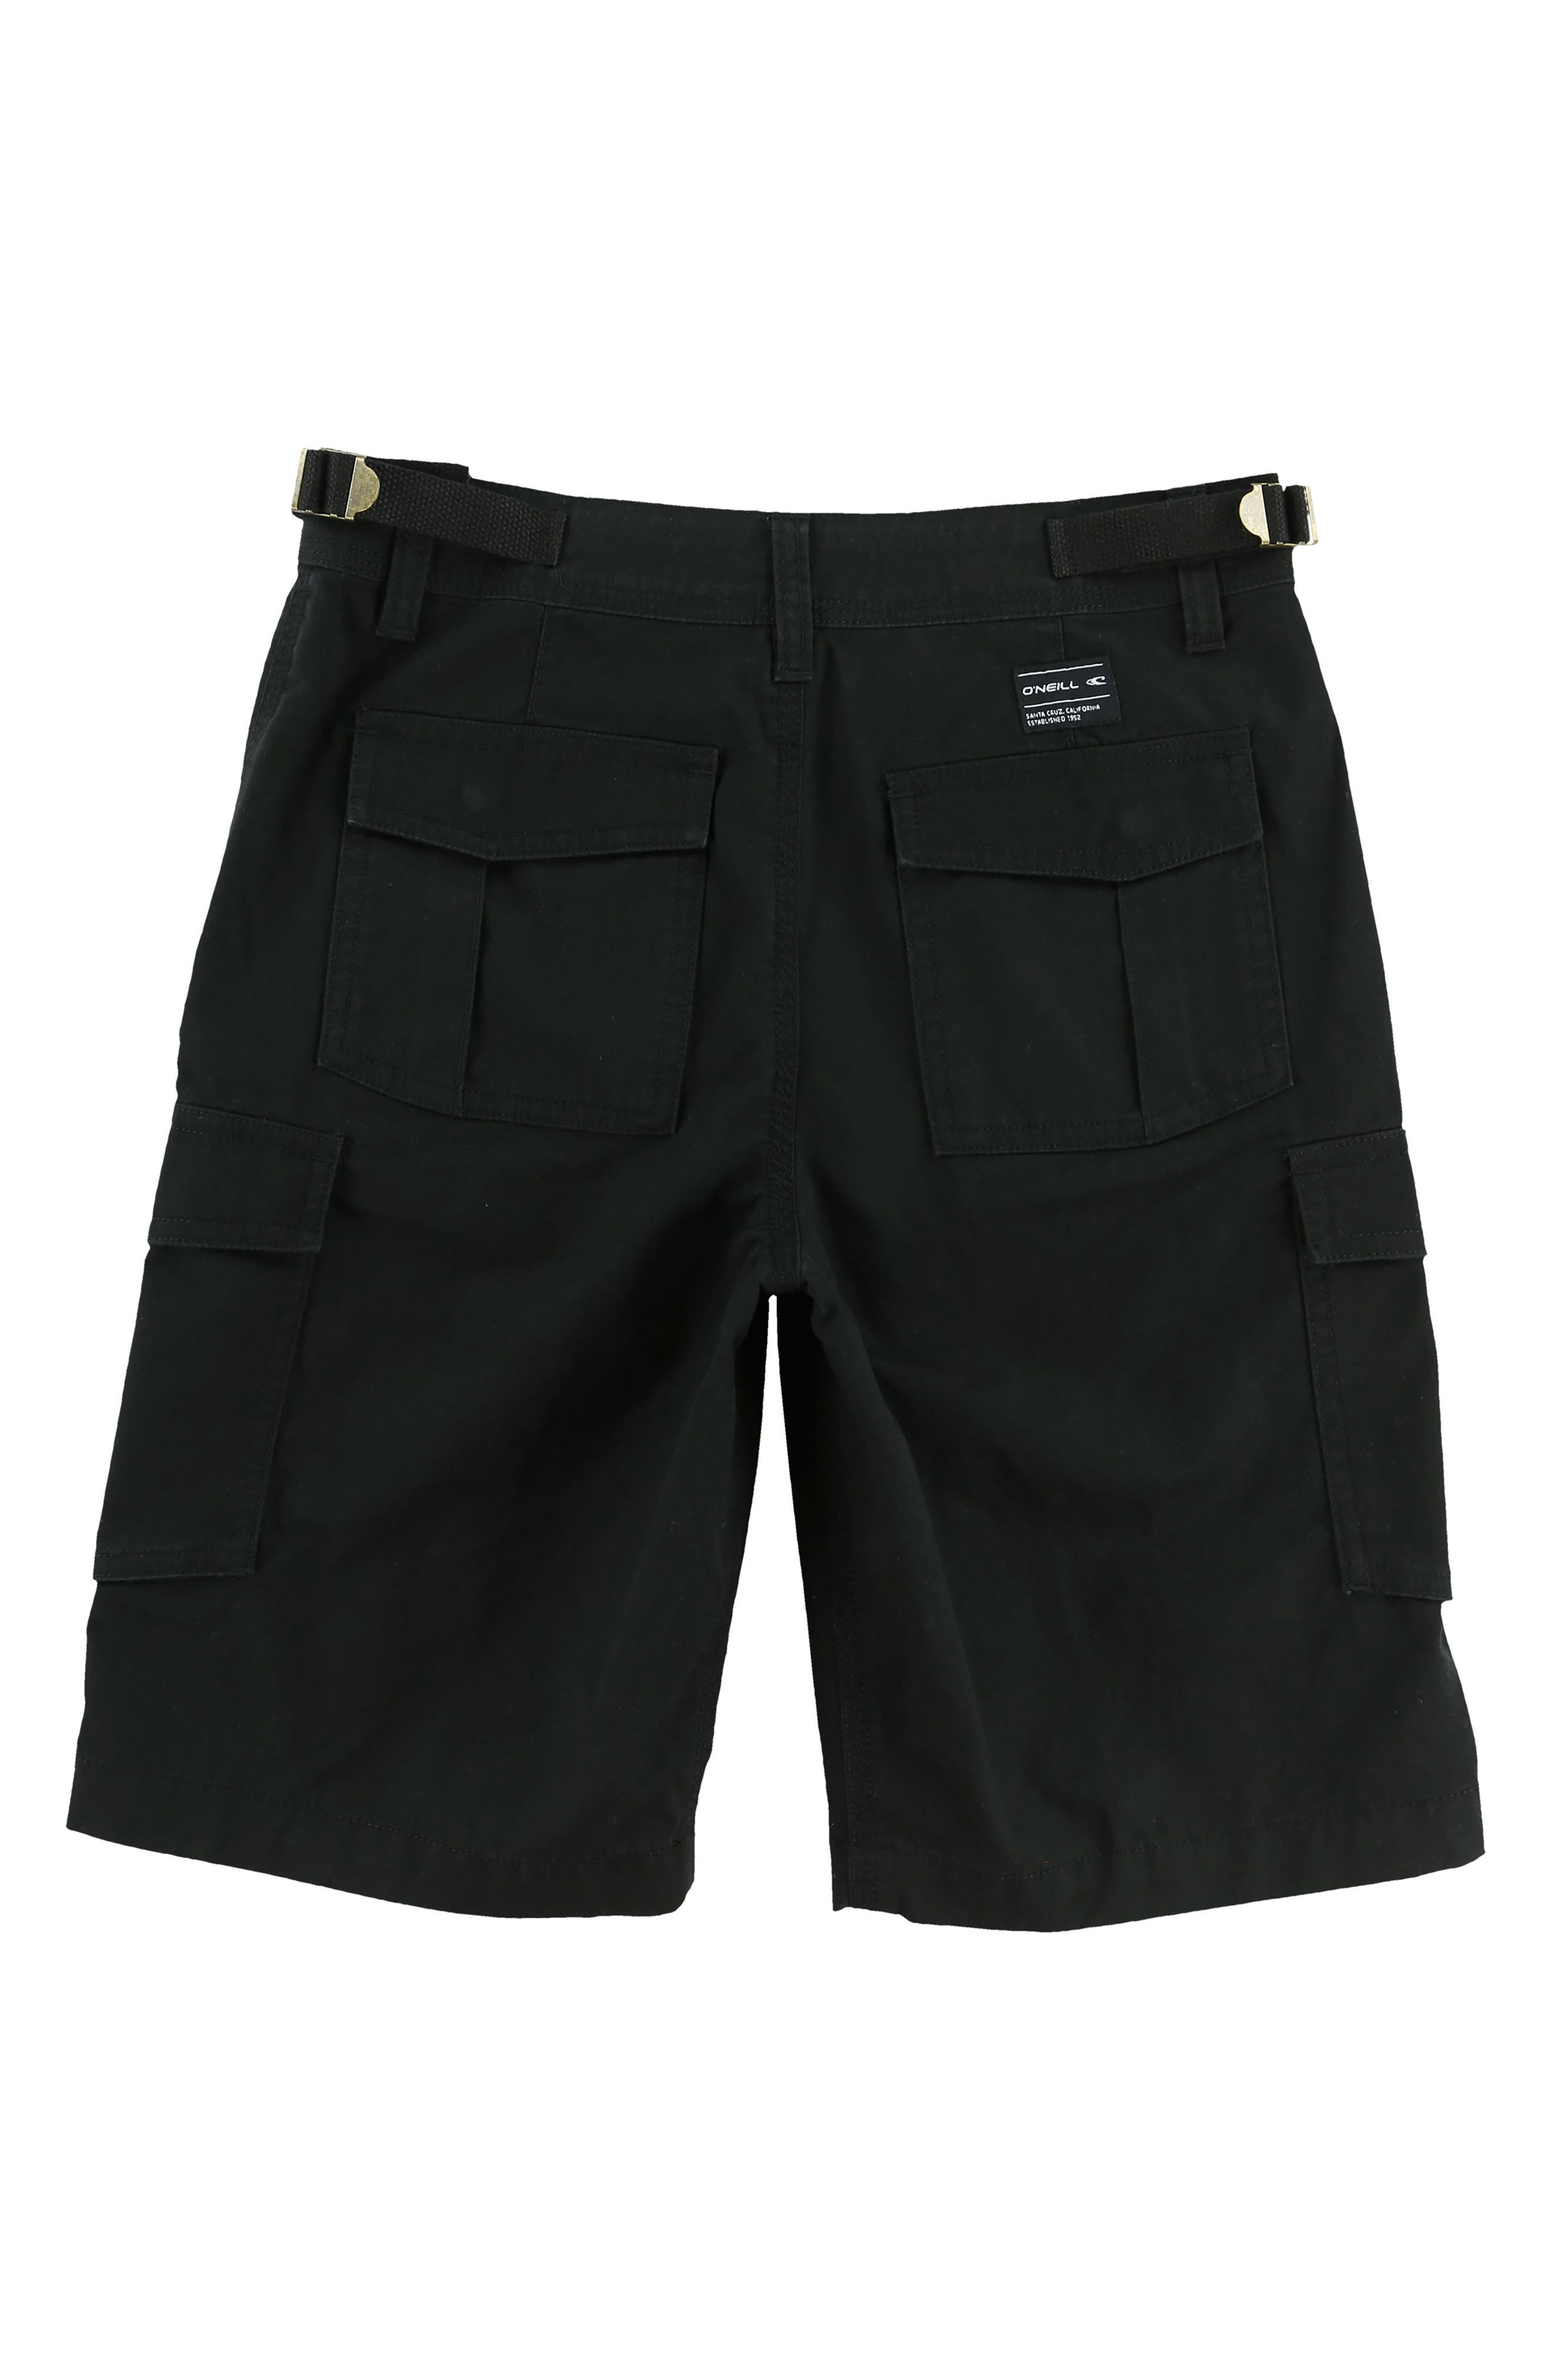 El Toro Cargo Shorts,                             Main thumbnail 1, color,                             001